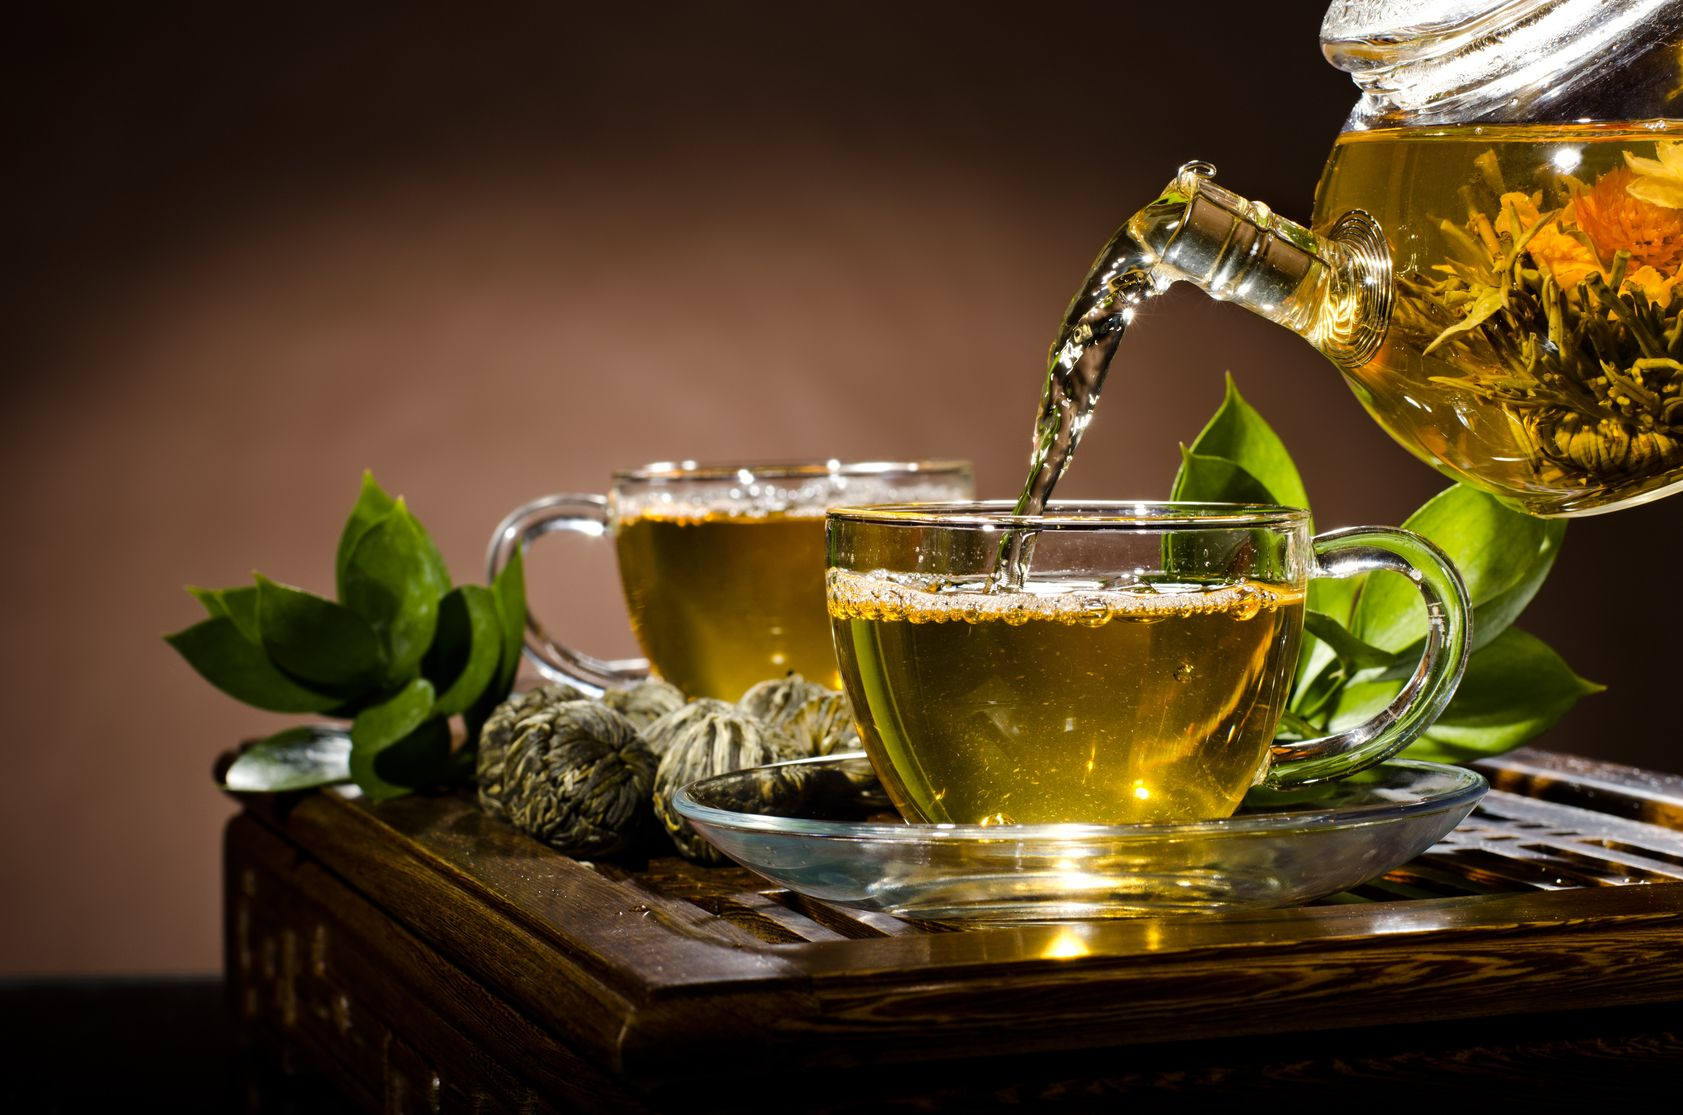 green tea protects elderly against Alzheimer's and cognitive impairment